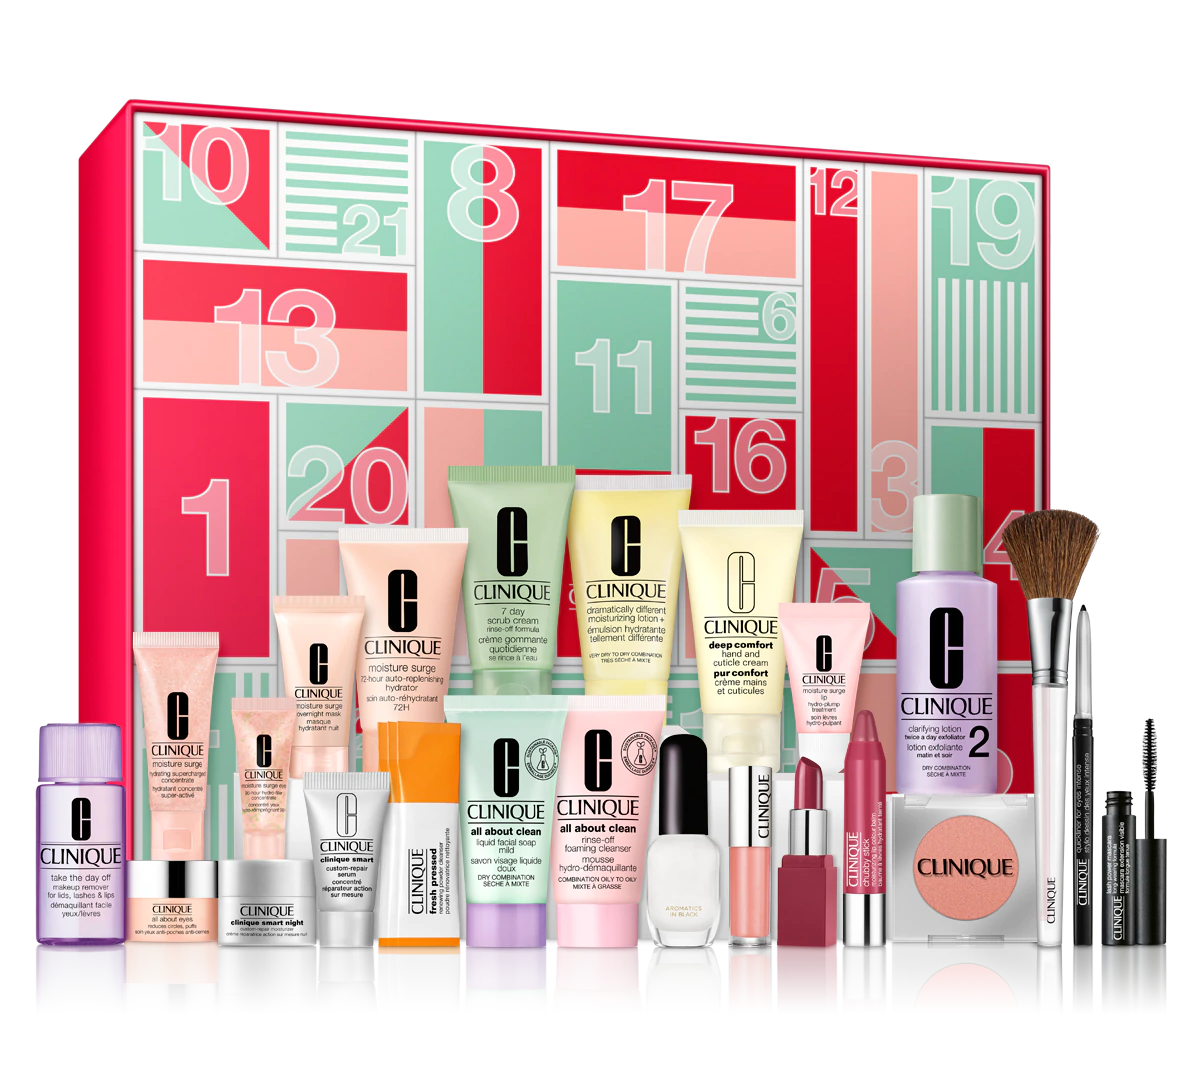 Clinique 24 Days of Clinique Advent Calendar 2020 Contents Reveal! AVAILABLE NOW!